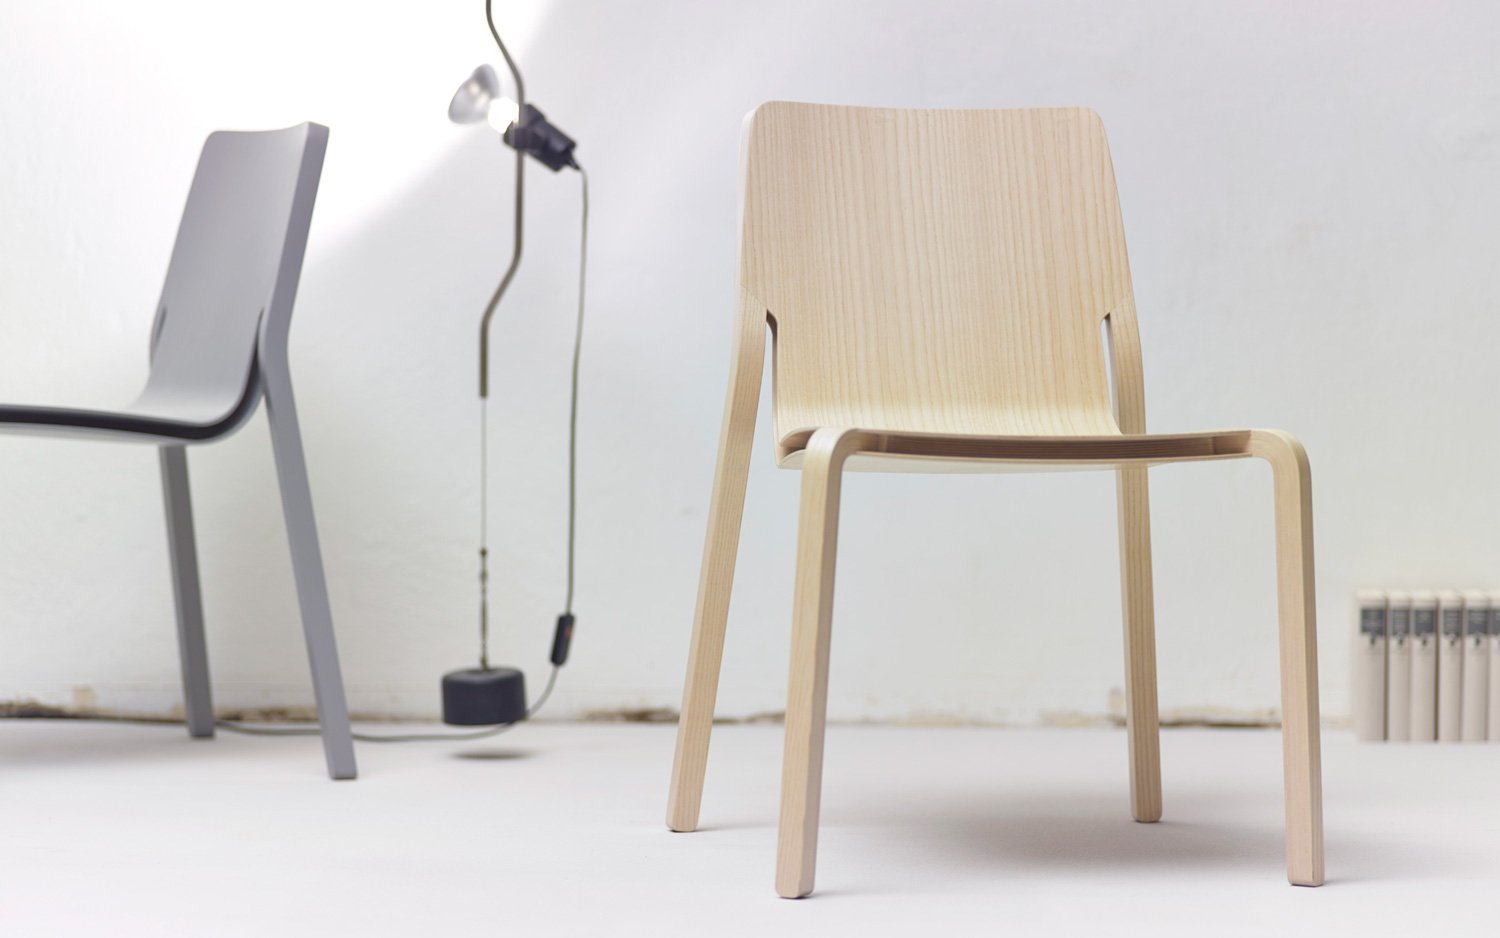 Posts Lightweight Plywood Layer Chair